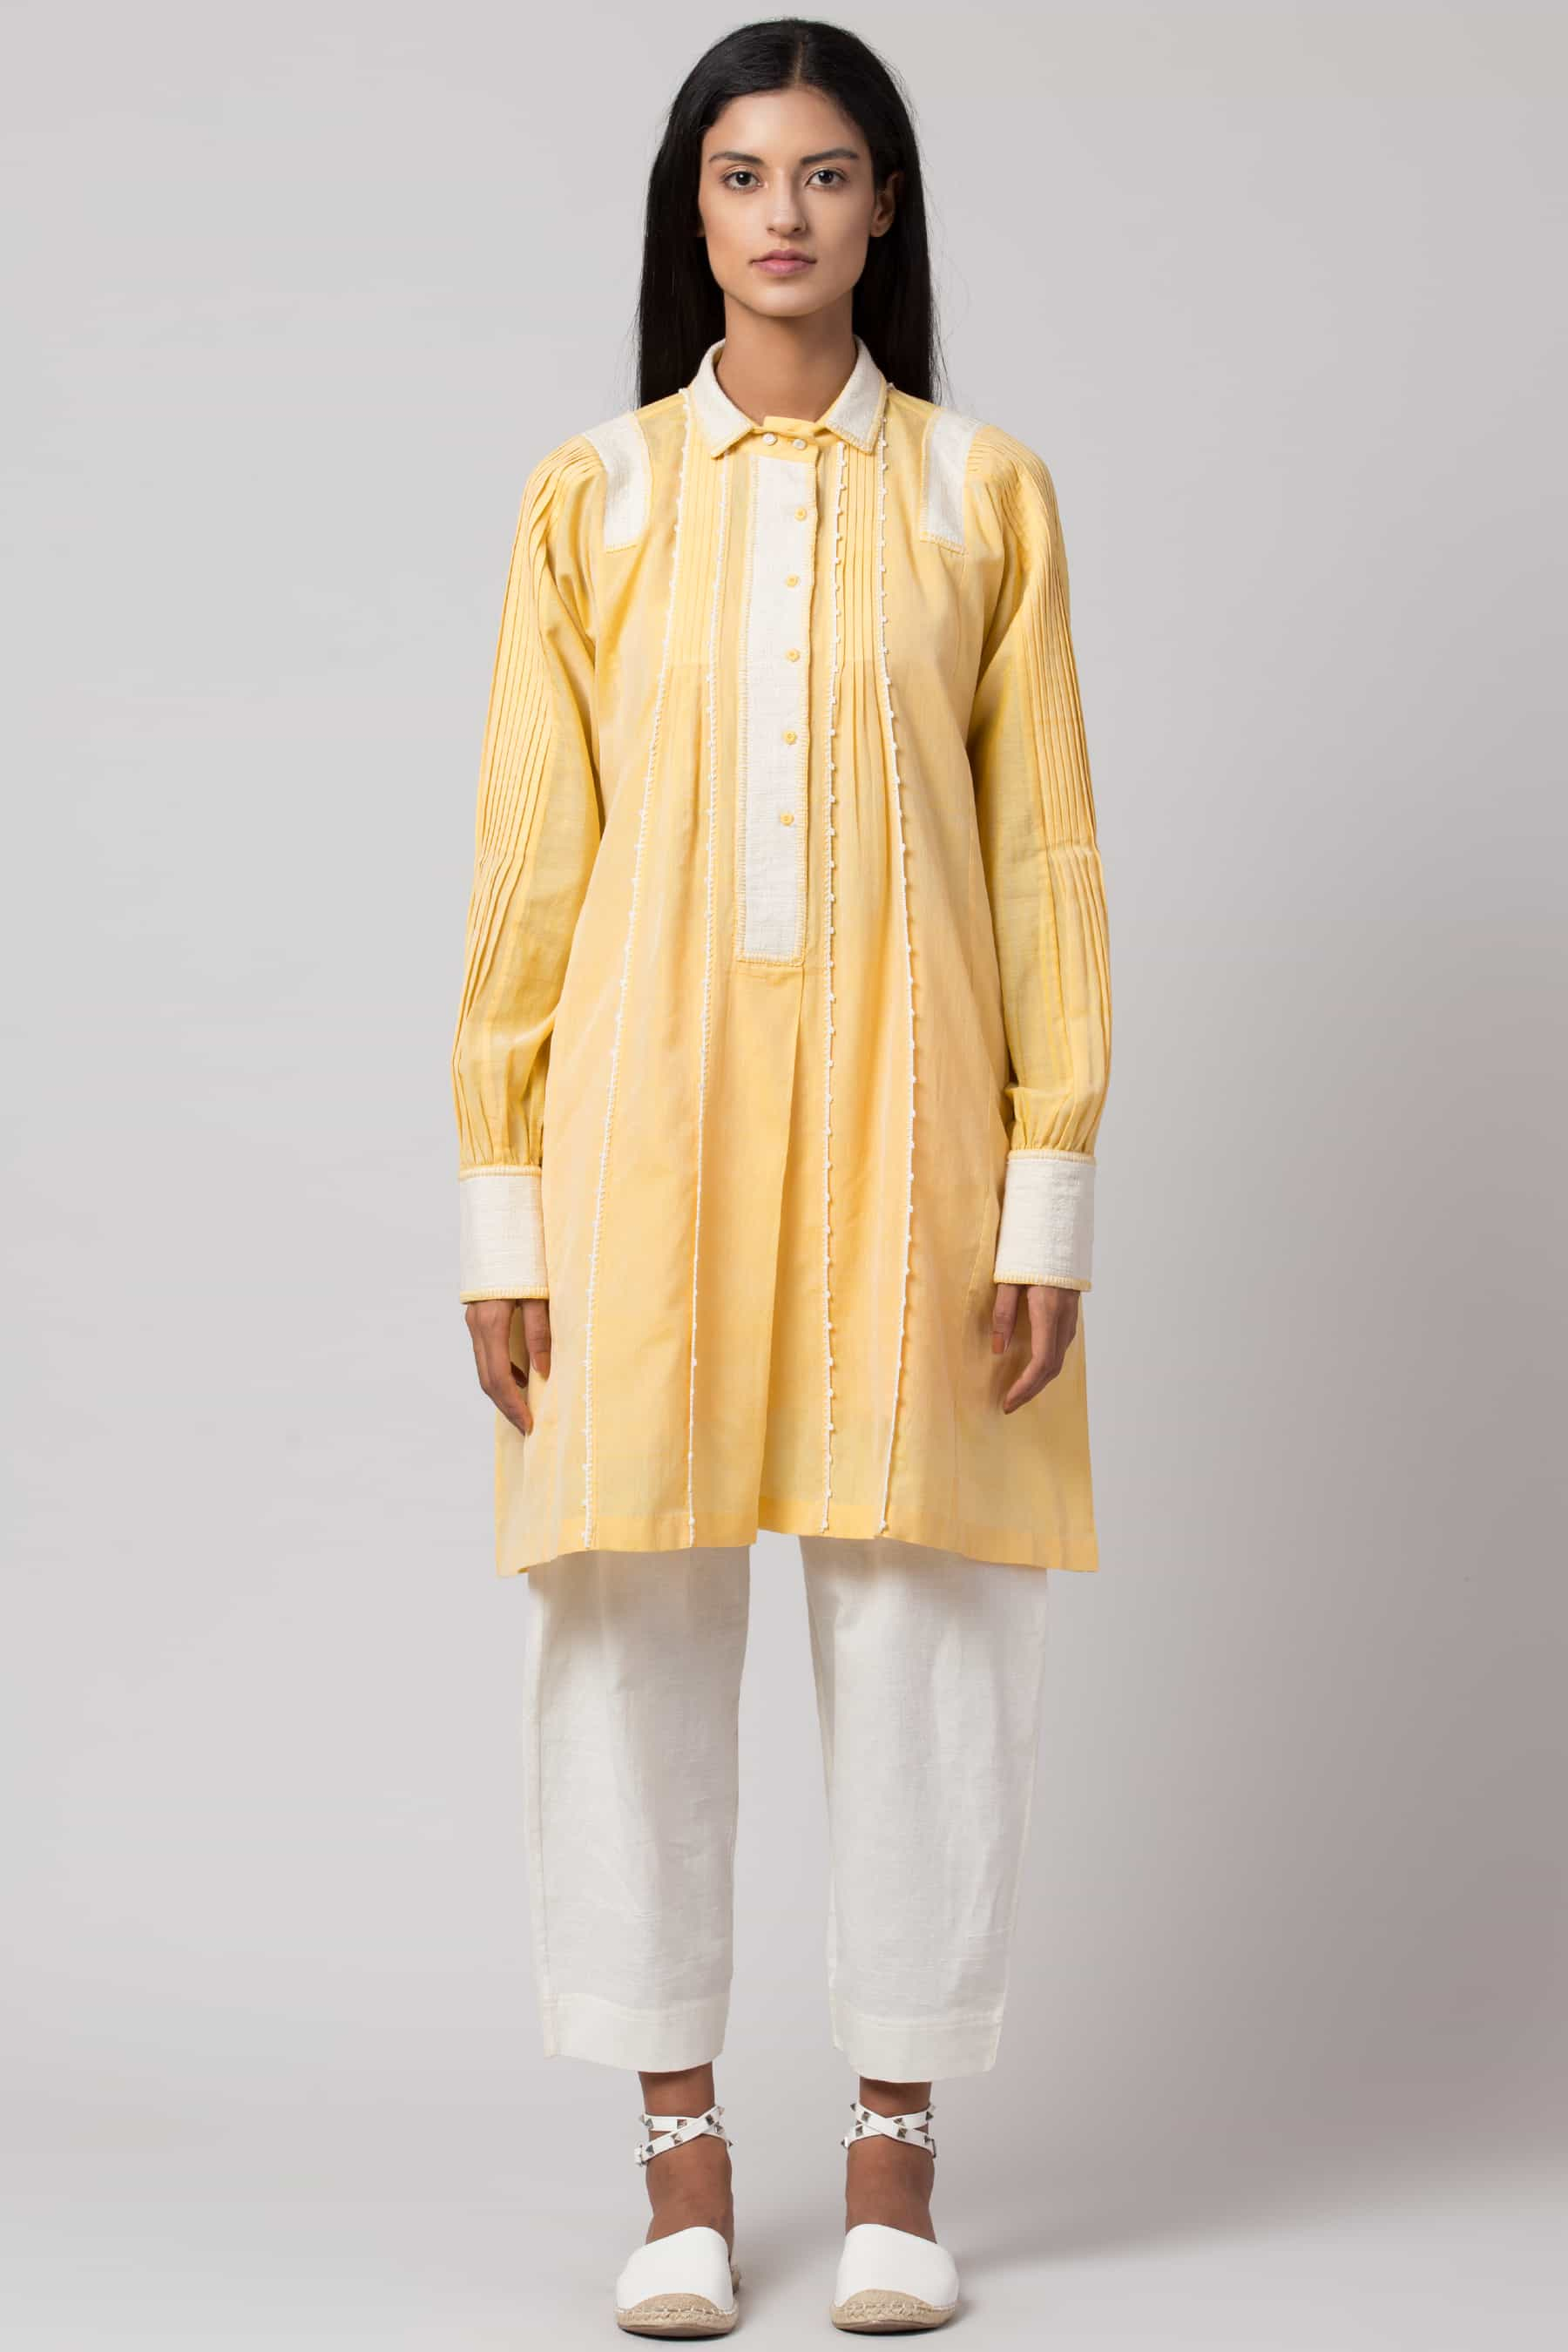 Yellow paneled crochet shirt dress made in 100% handwoven yarn dyed cotton Chanderi - Front